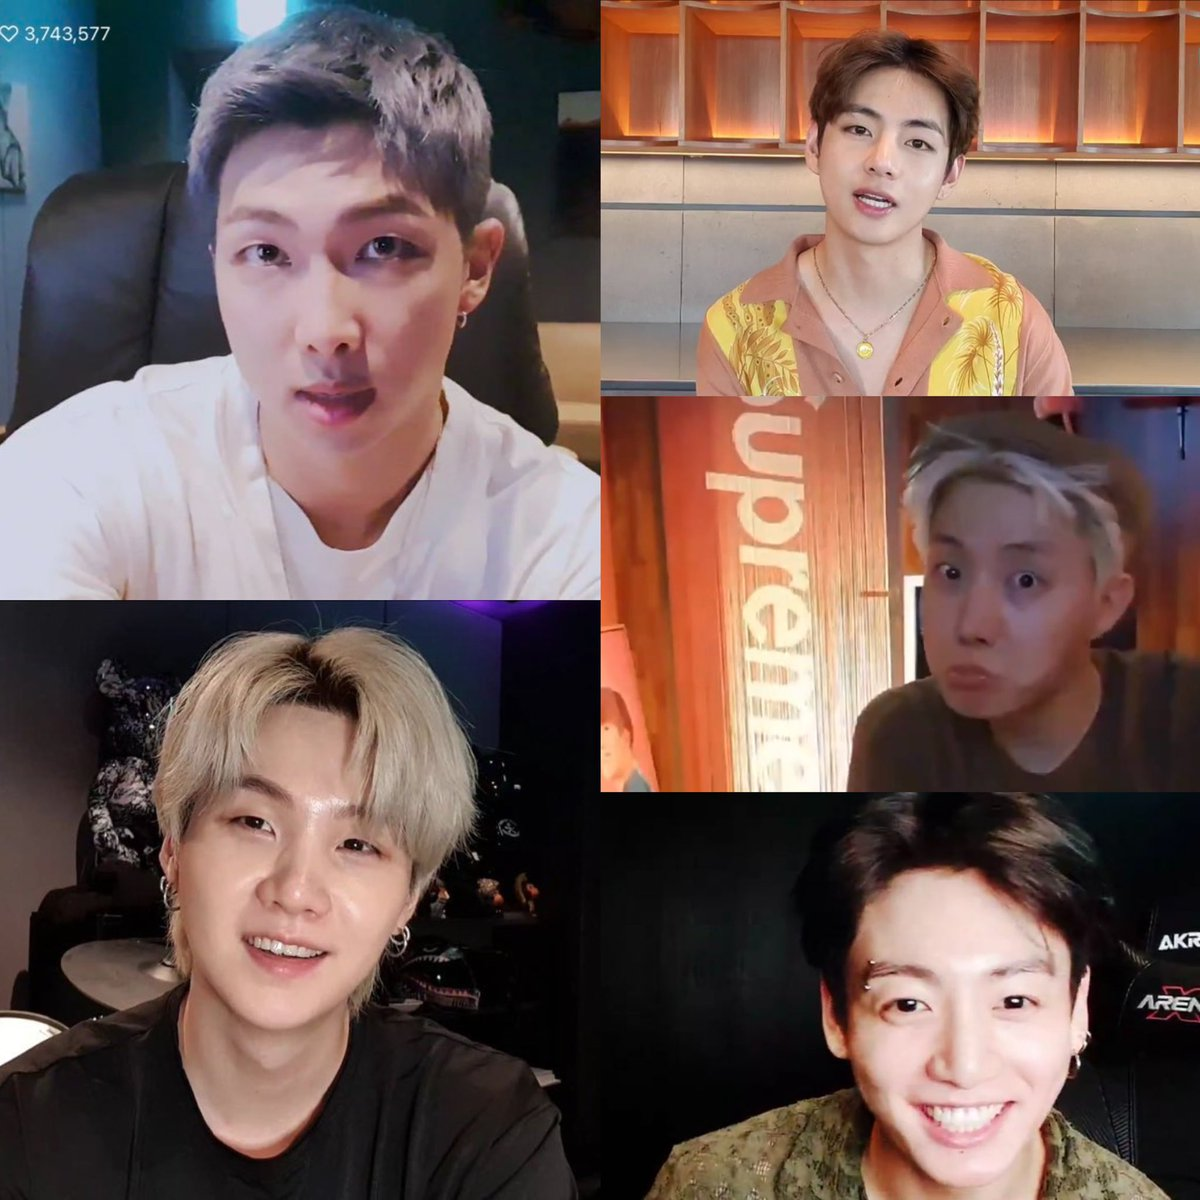 RT @sugatistic: we got vlives from Namjoon, Taehyung, Yoongi, Hobi and Jungkook all in the month of July https://t.co/y6f4QgX96Z